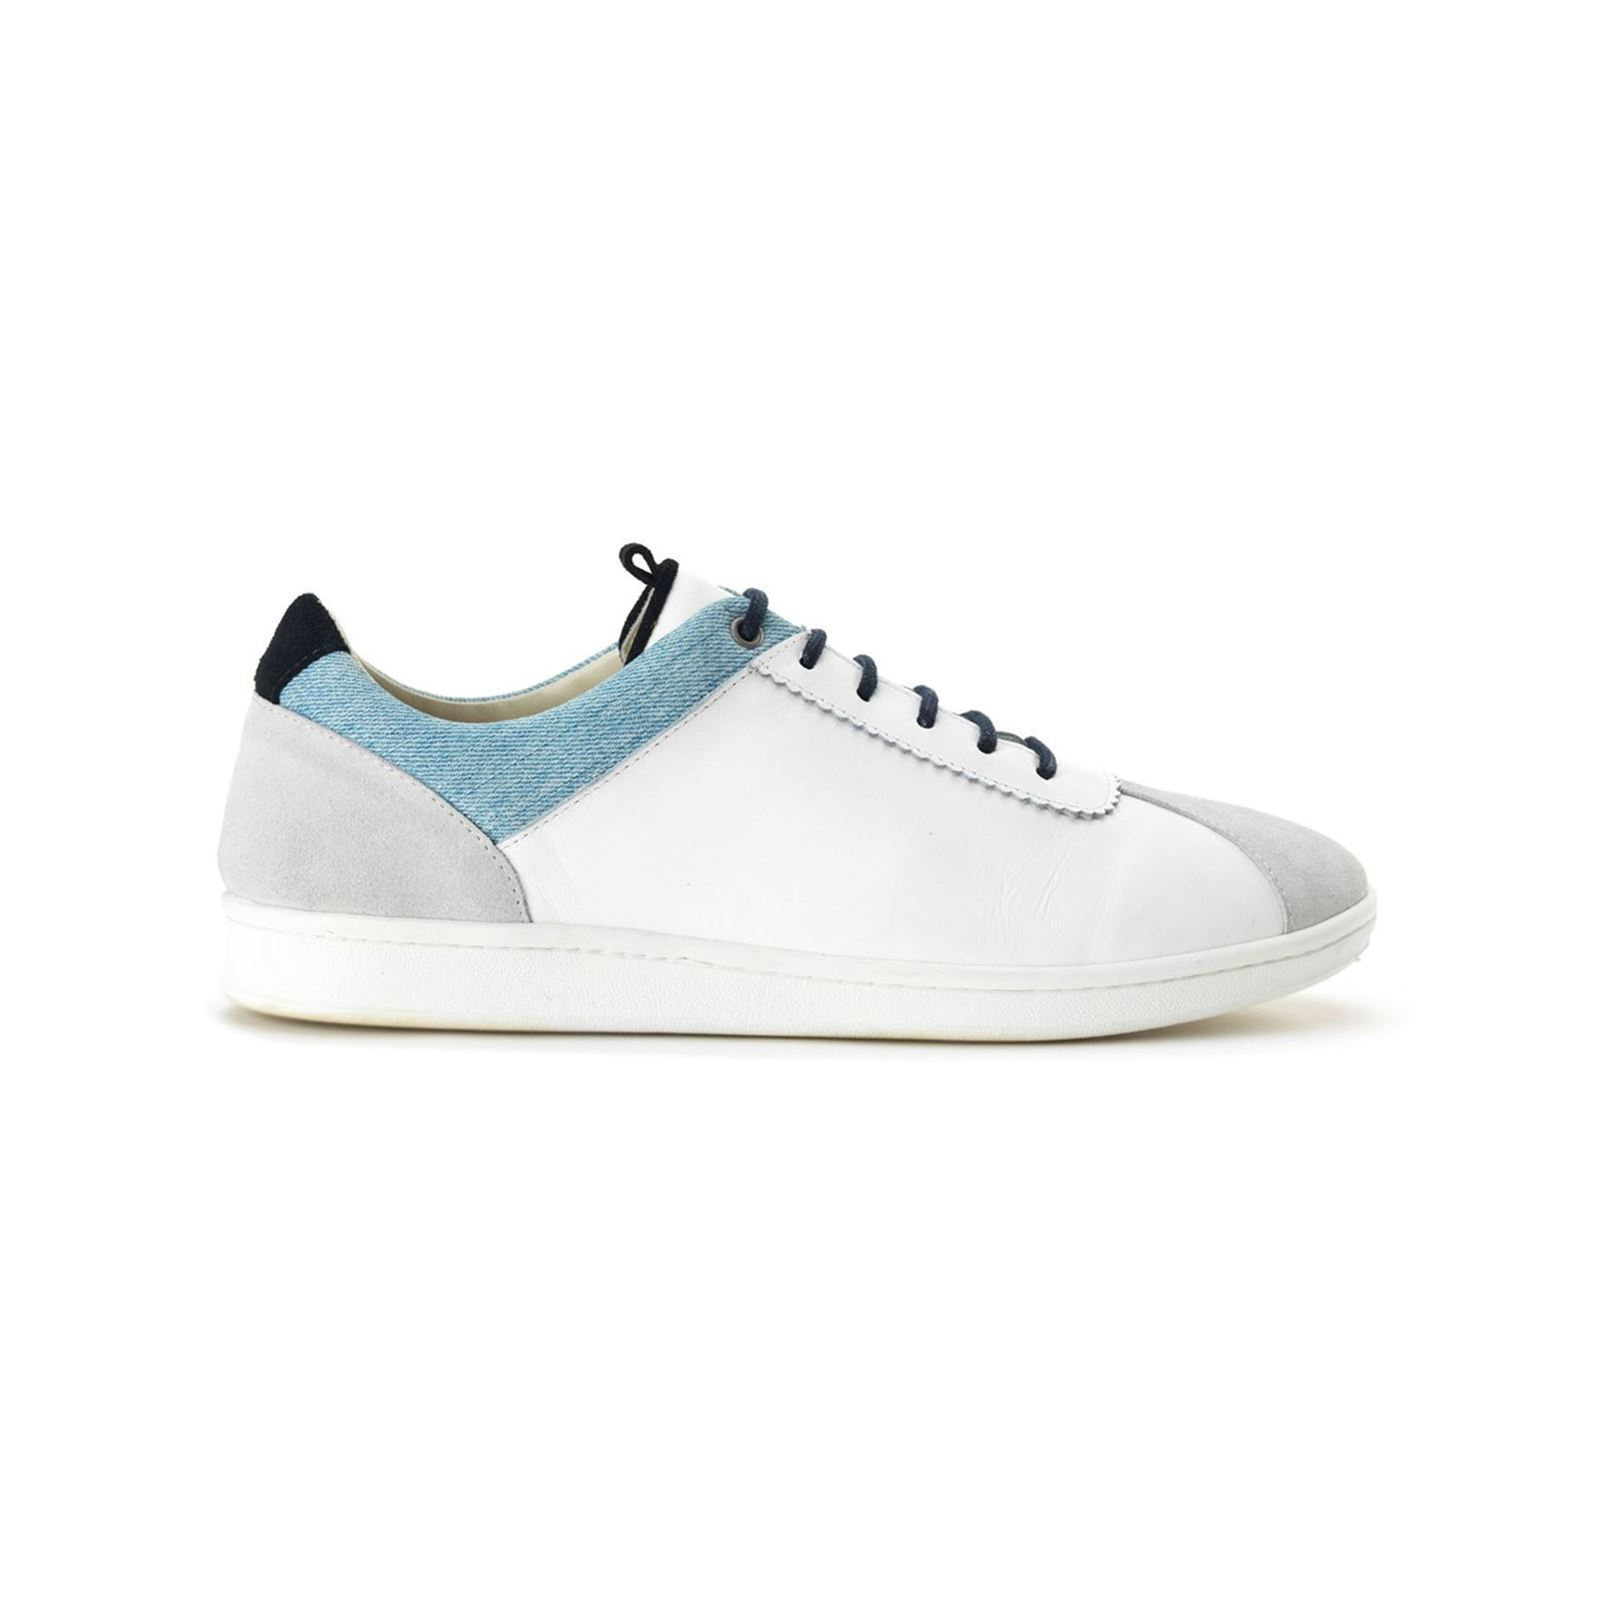 Wnr775mn Sneakers Match En Cuir Blanc Hacter Point 0ExYwRqTR